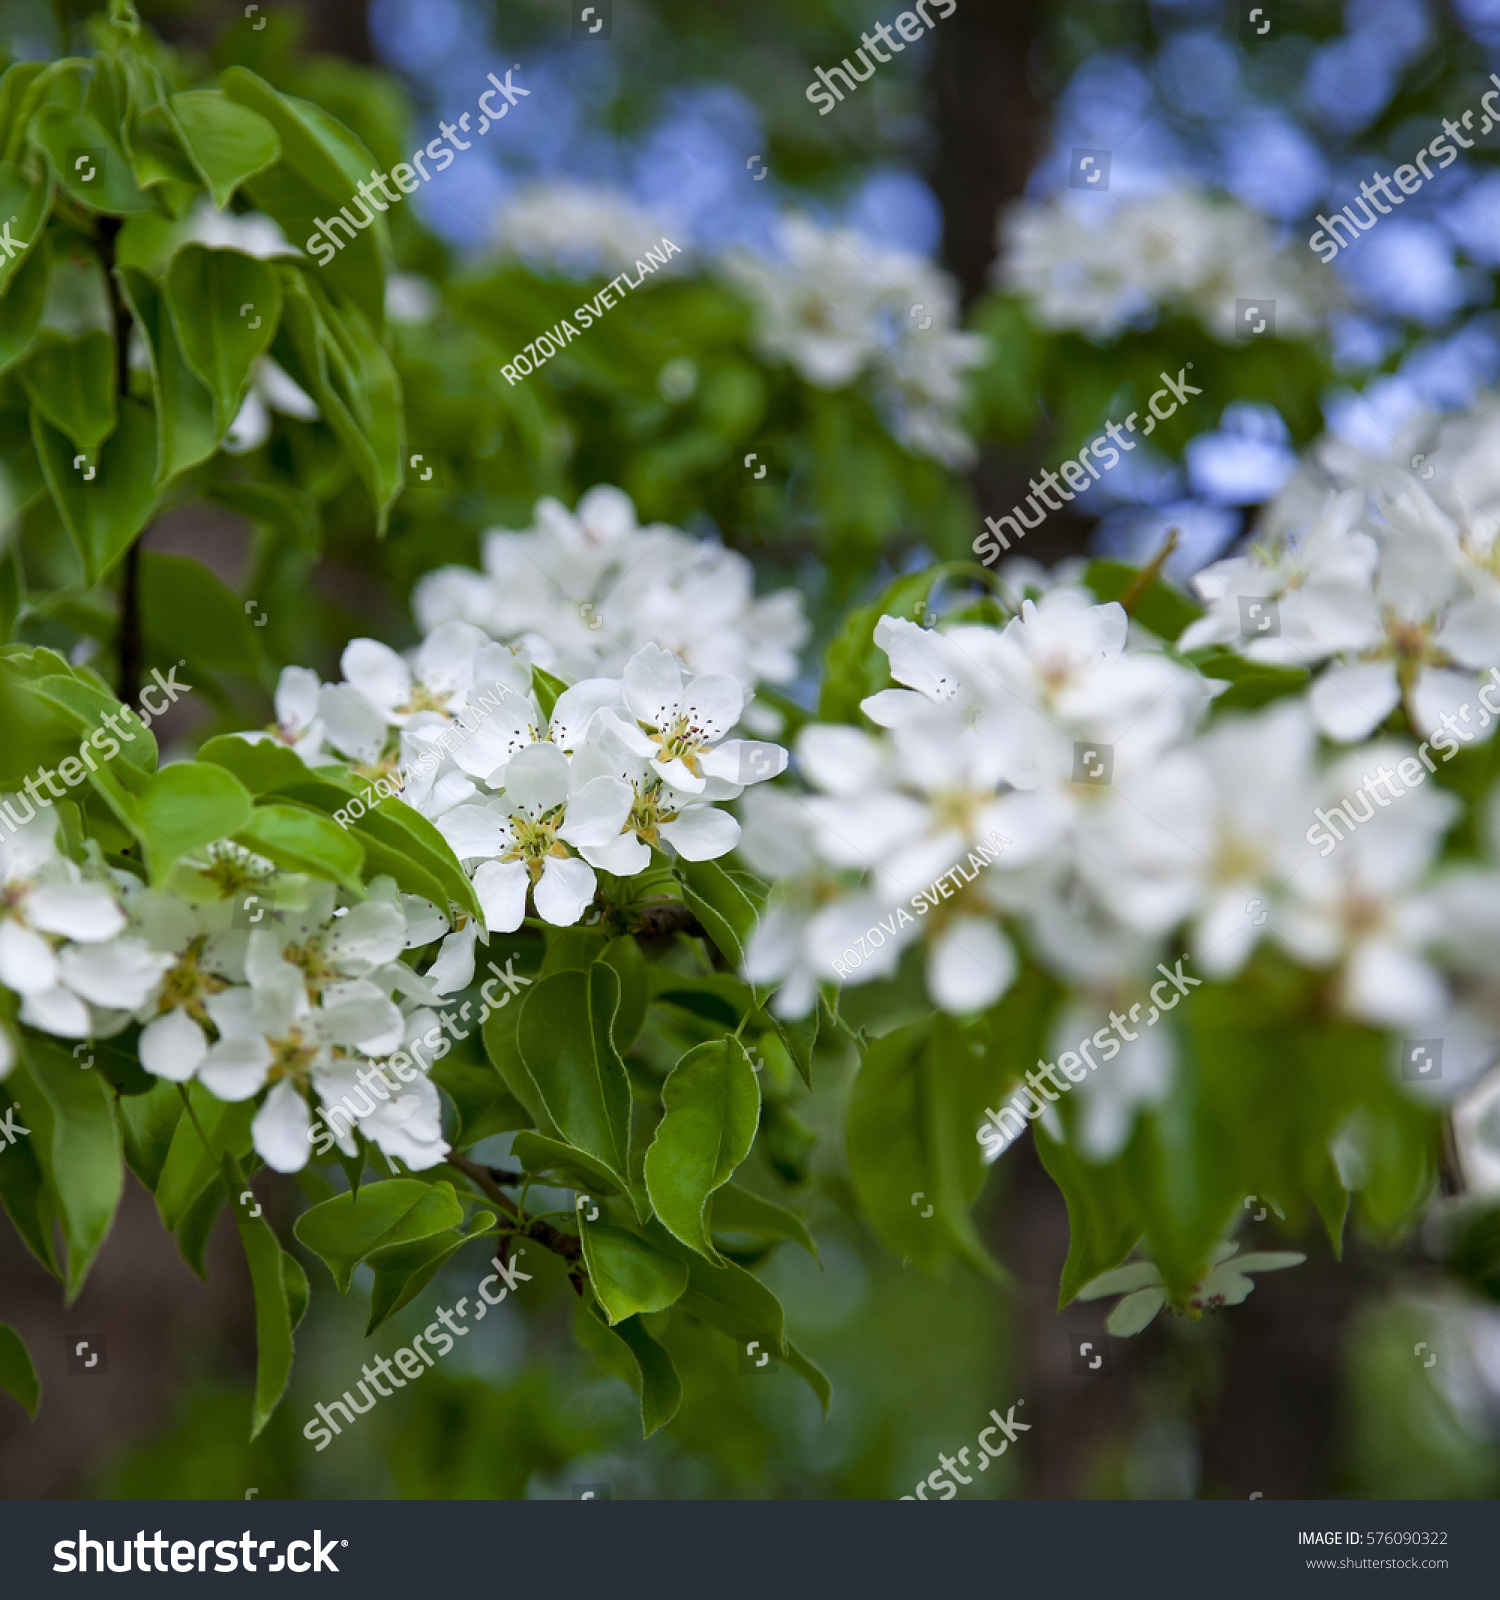 Apple Tree Blooms White Flowers On A Background Of Green Leaves And